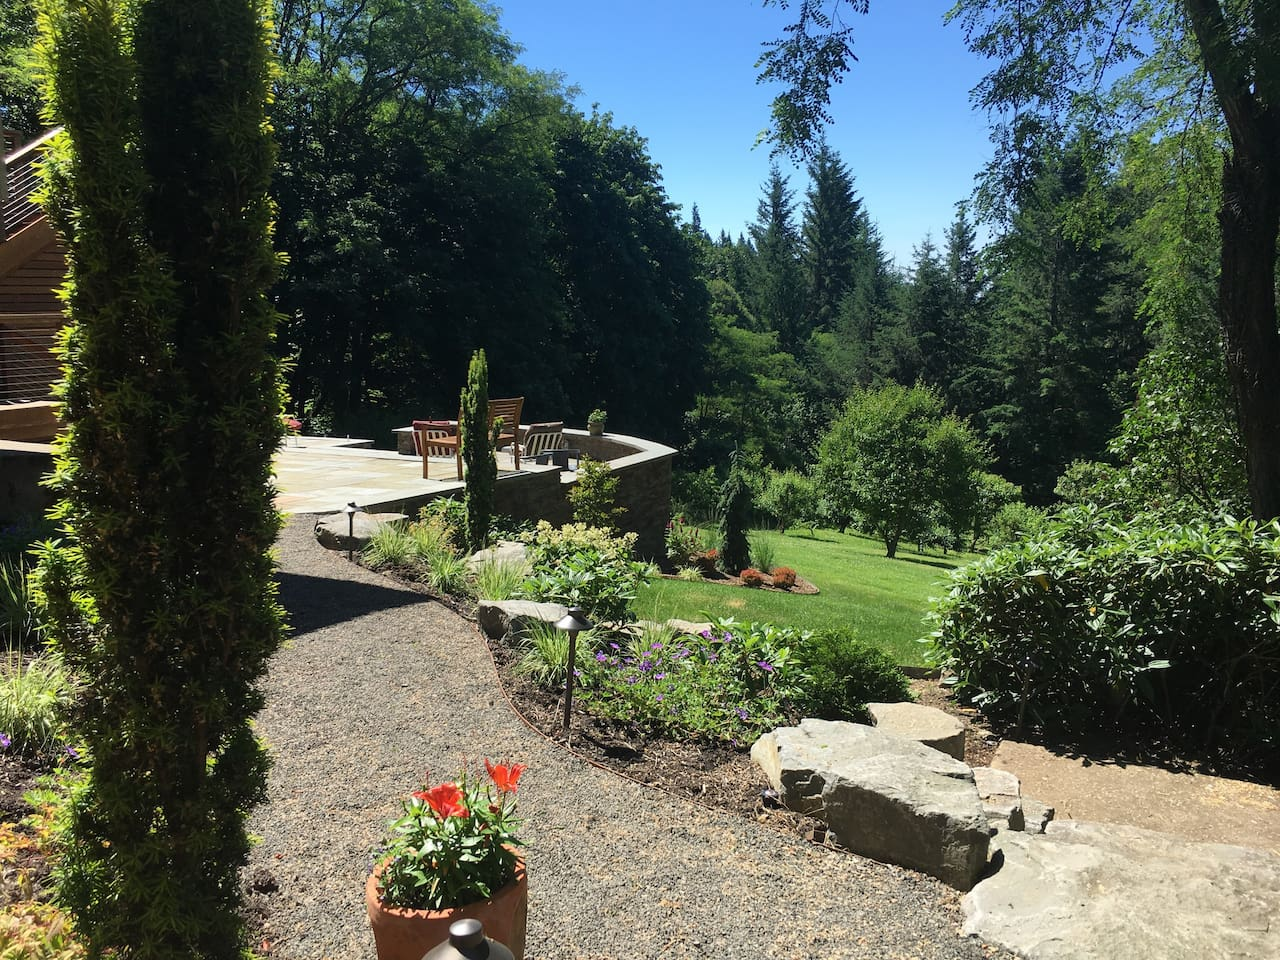 View of the backyard